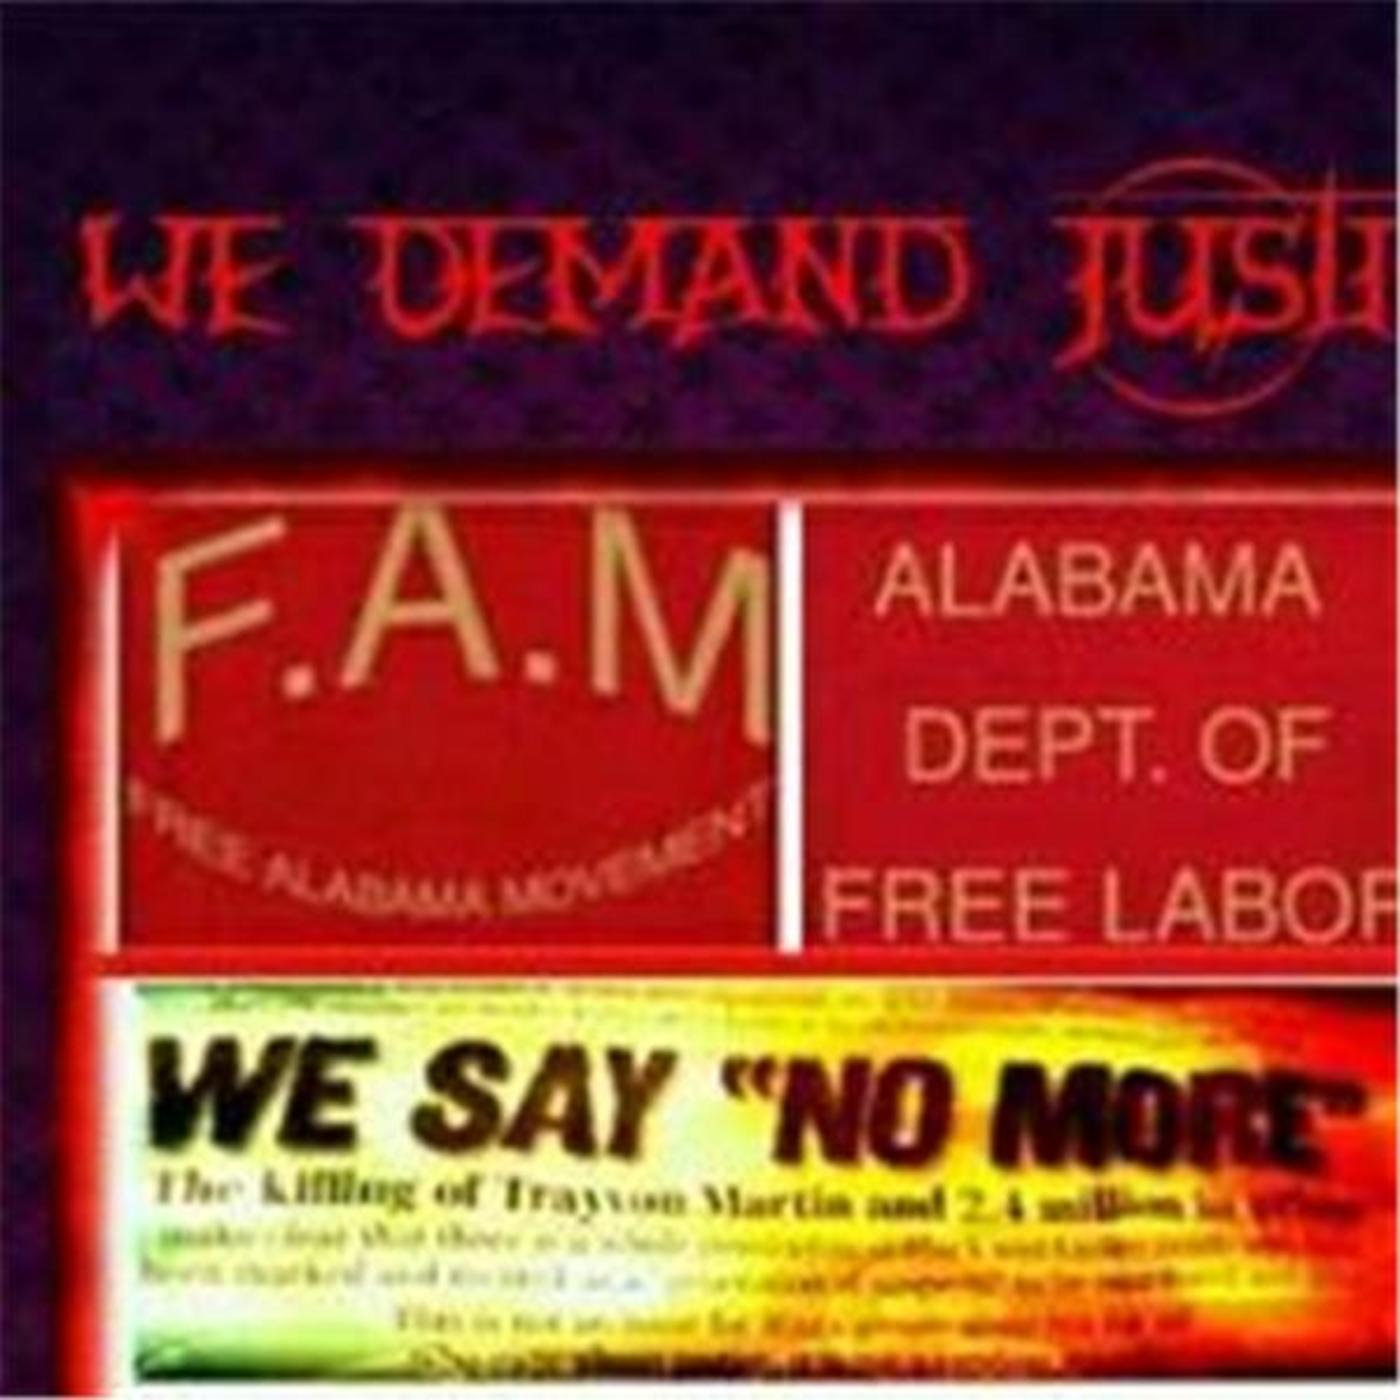 FREEALABAMAMOVEMENT